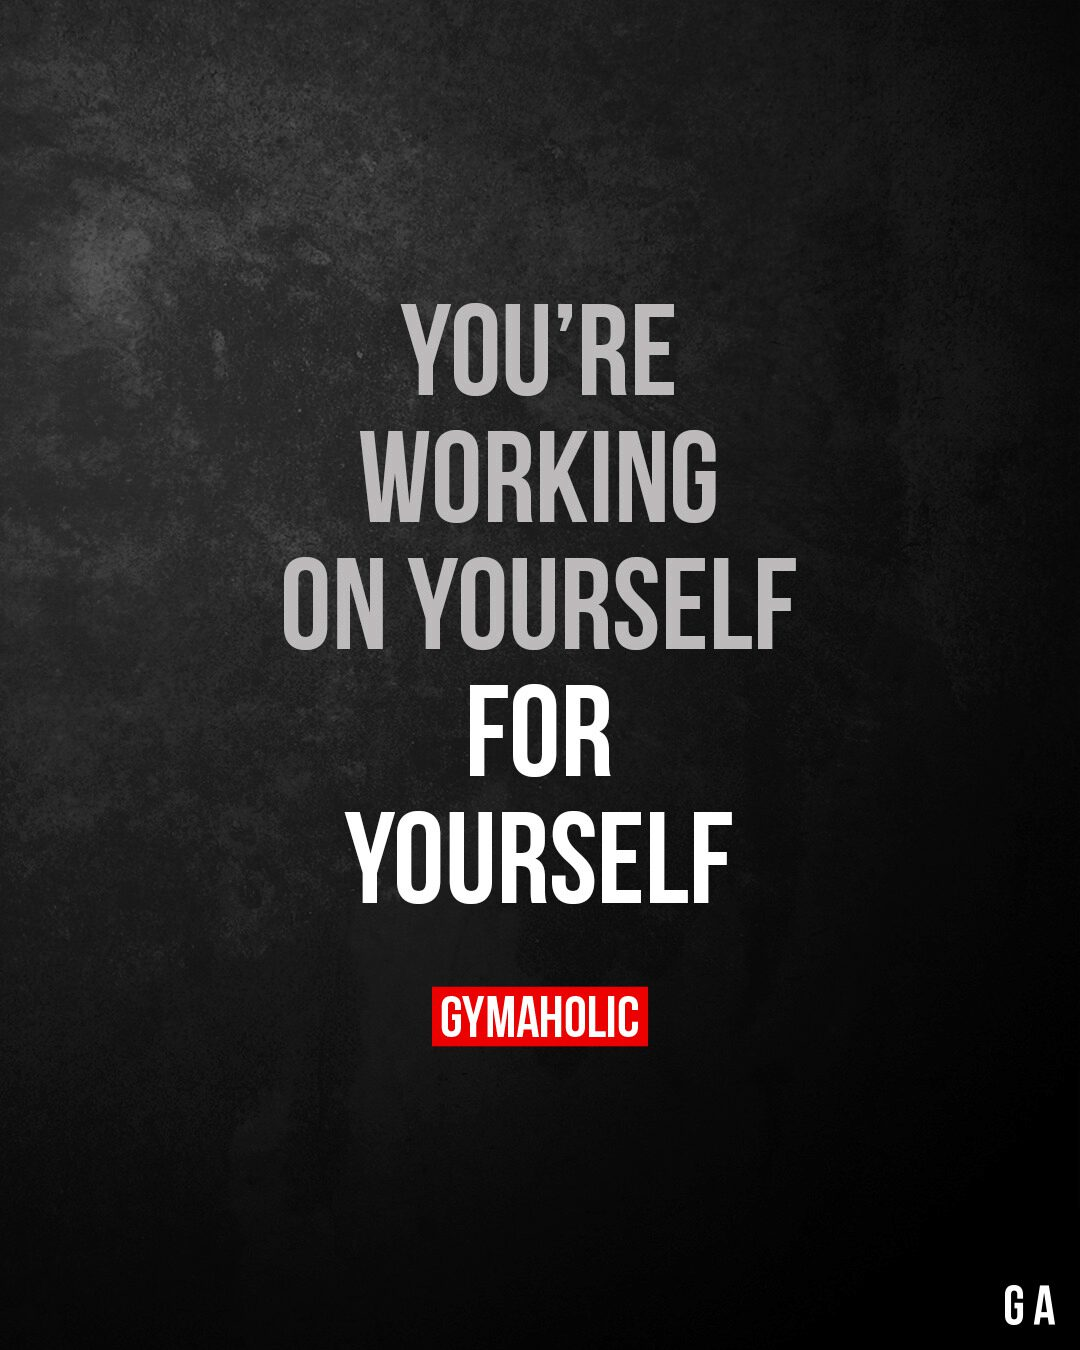 You're working on yourself